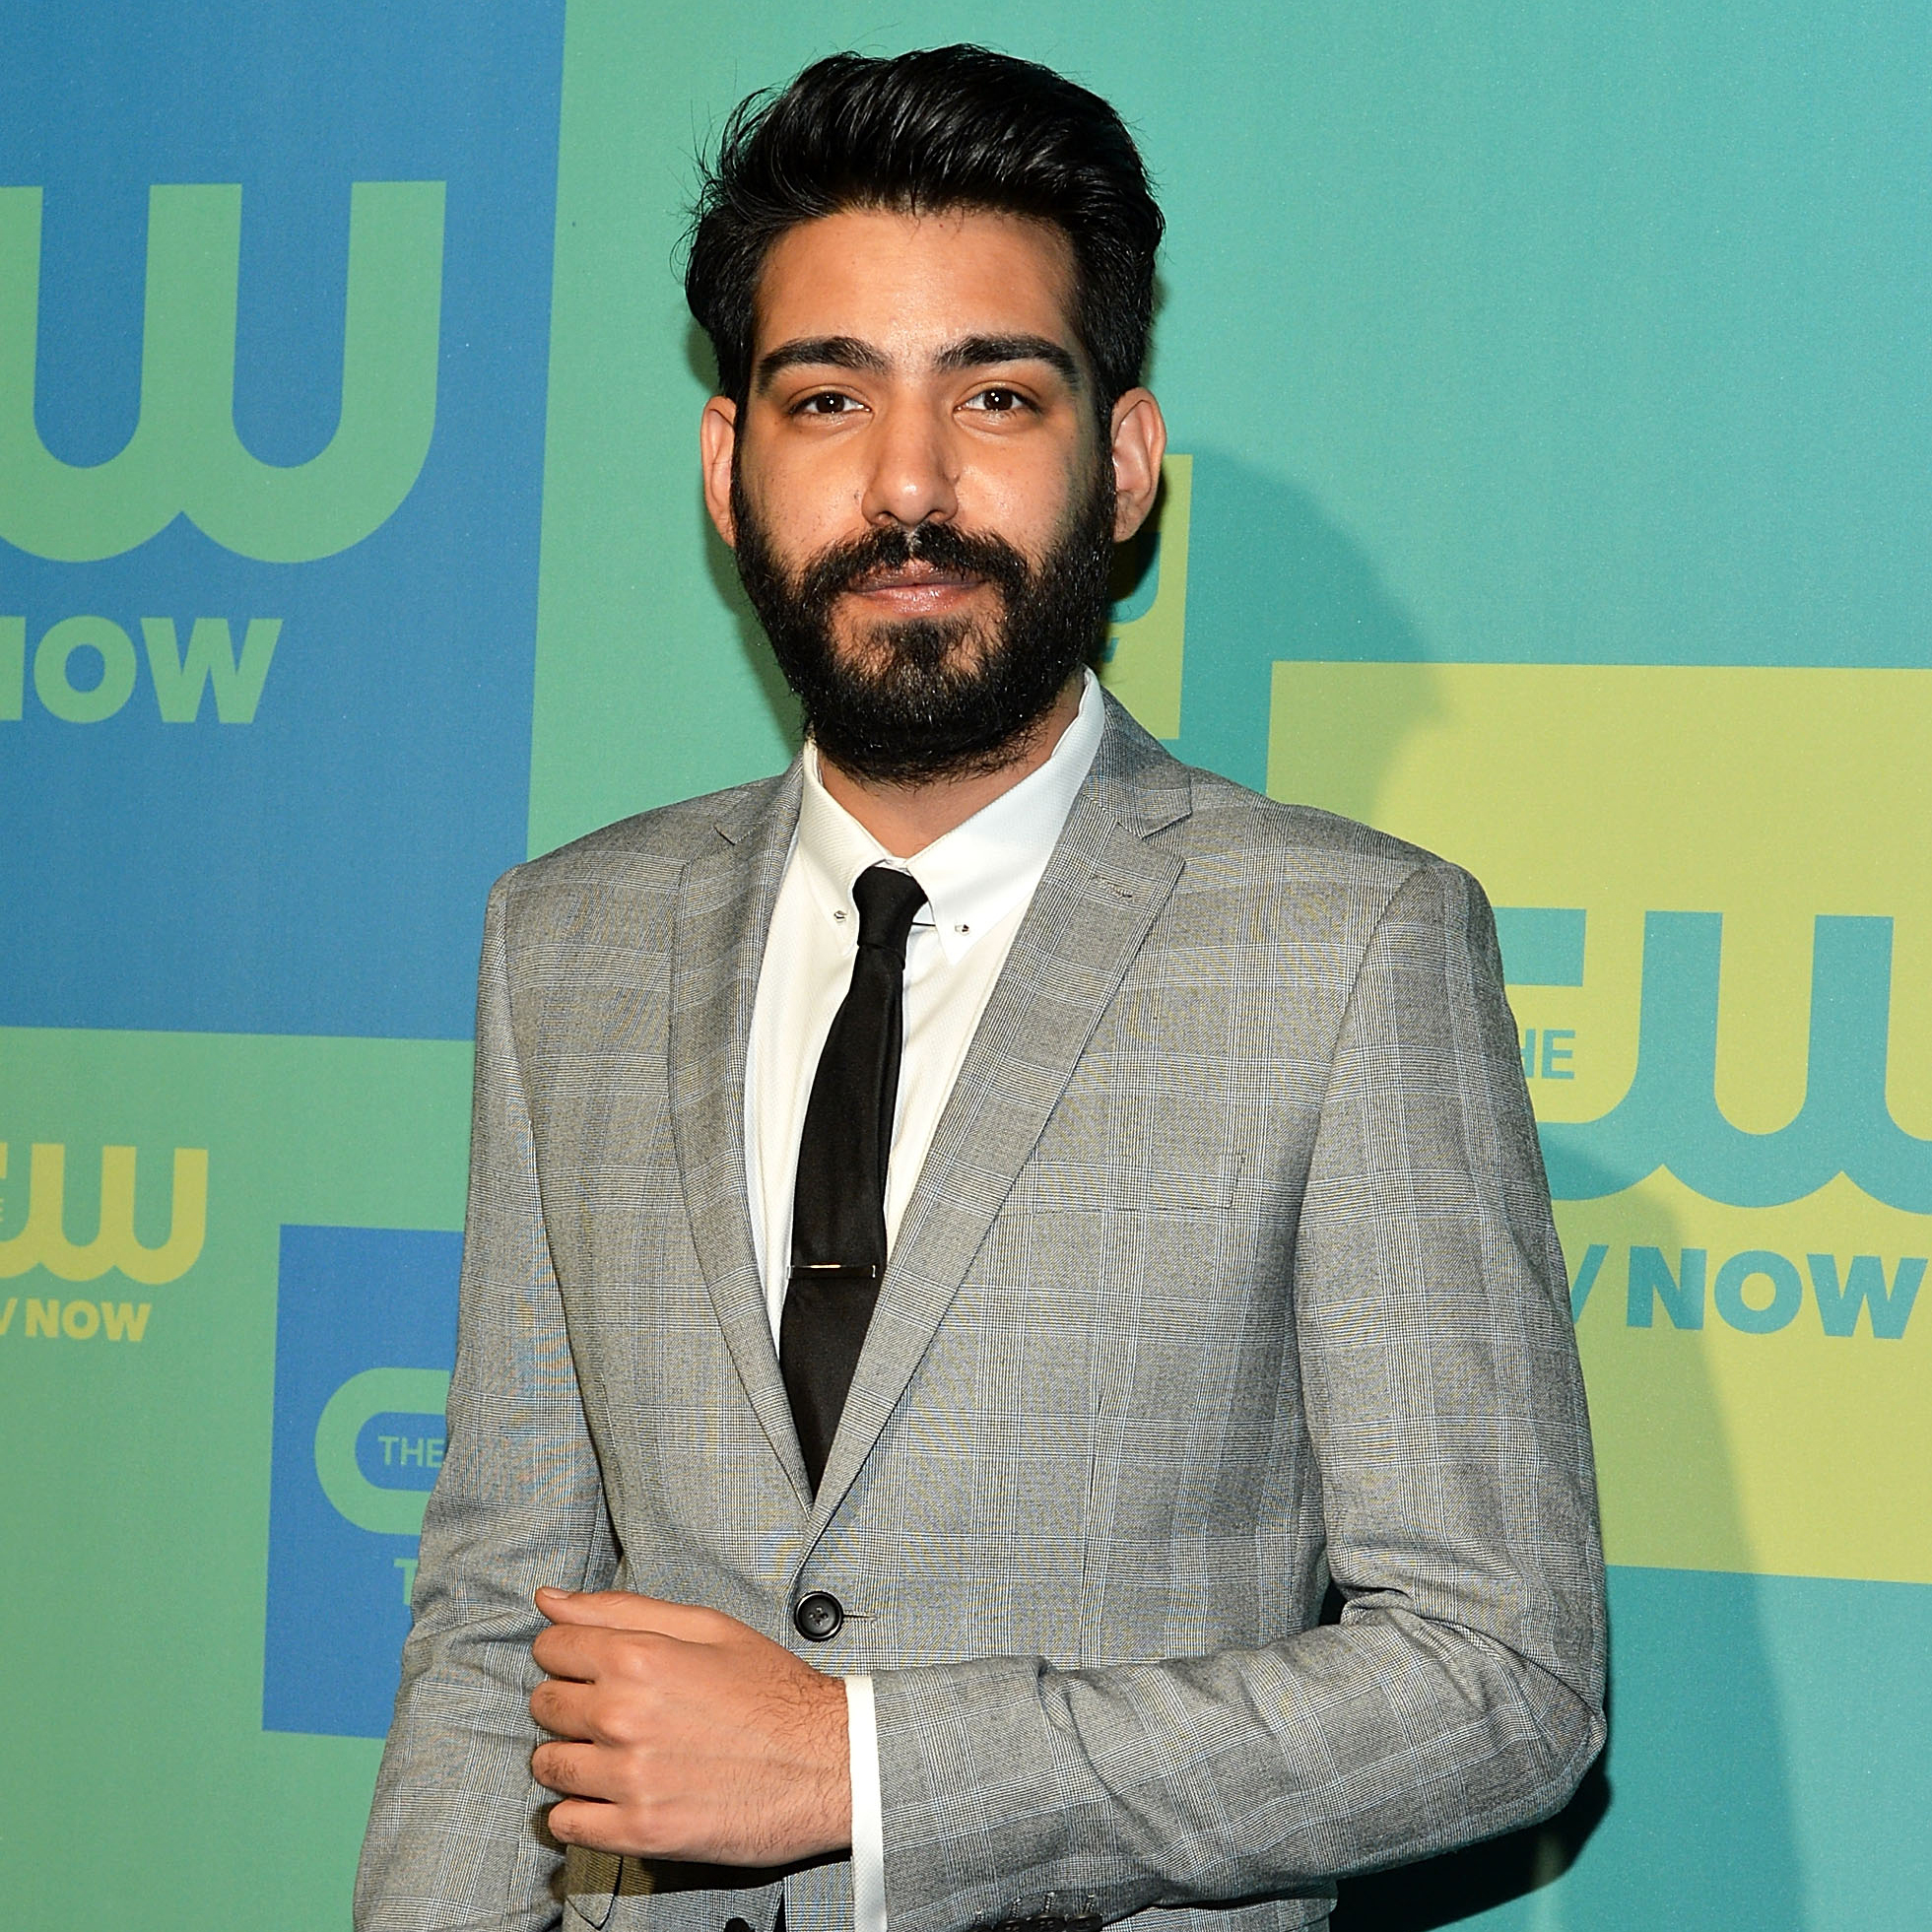 """Rahul-Kohli-abuse - The iZombie actor shared his story on Twitter in March 2019, writing, """"The longer I keep my secret, the longer I feel like I'm protecting someone who doesn't deserve it and letting down others who are too afraid to step forward and confront their own past. I was a victim of sexual abuse as a child. We are not alone and we are not to blame."""""""